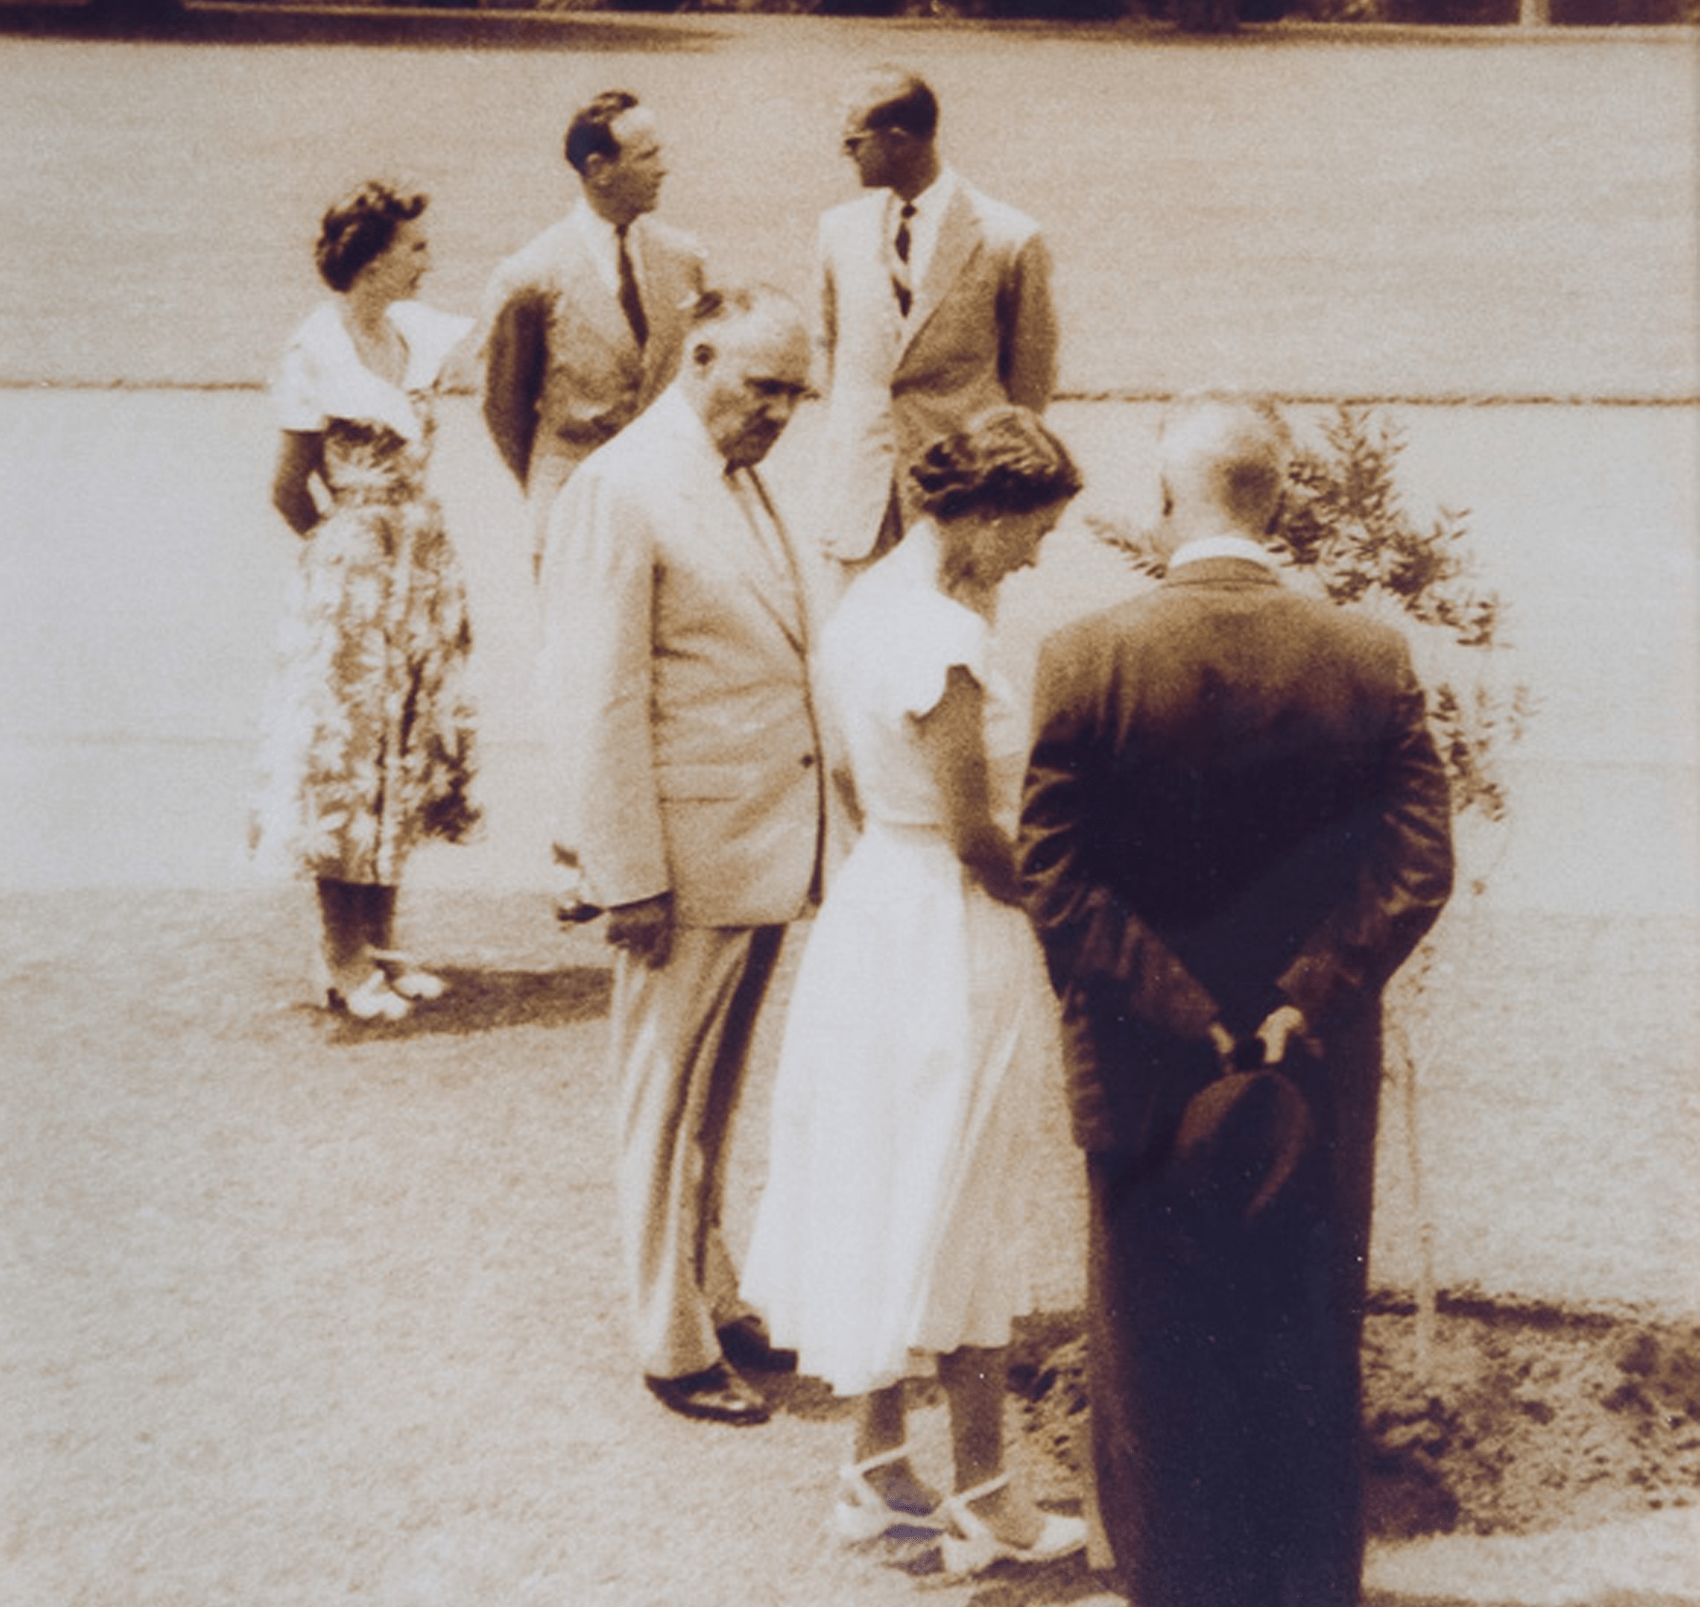 Queen Elizabeth Ii Planting A Tree During Her Visit, Which